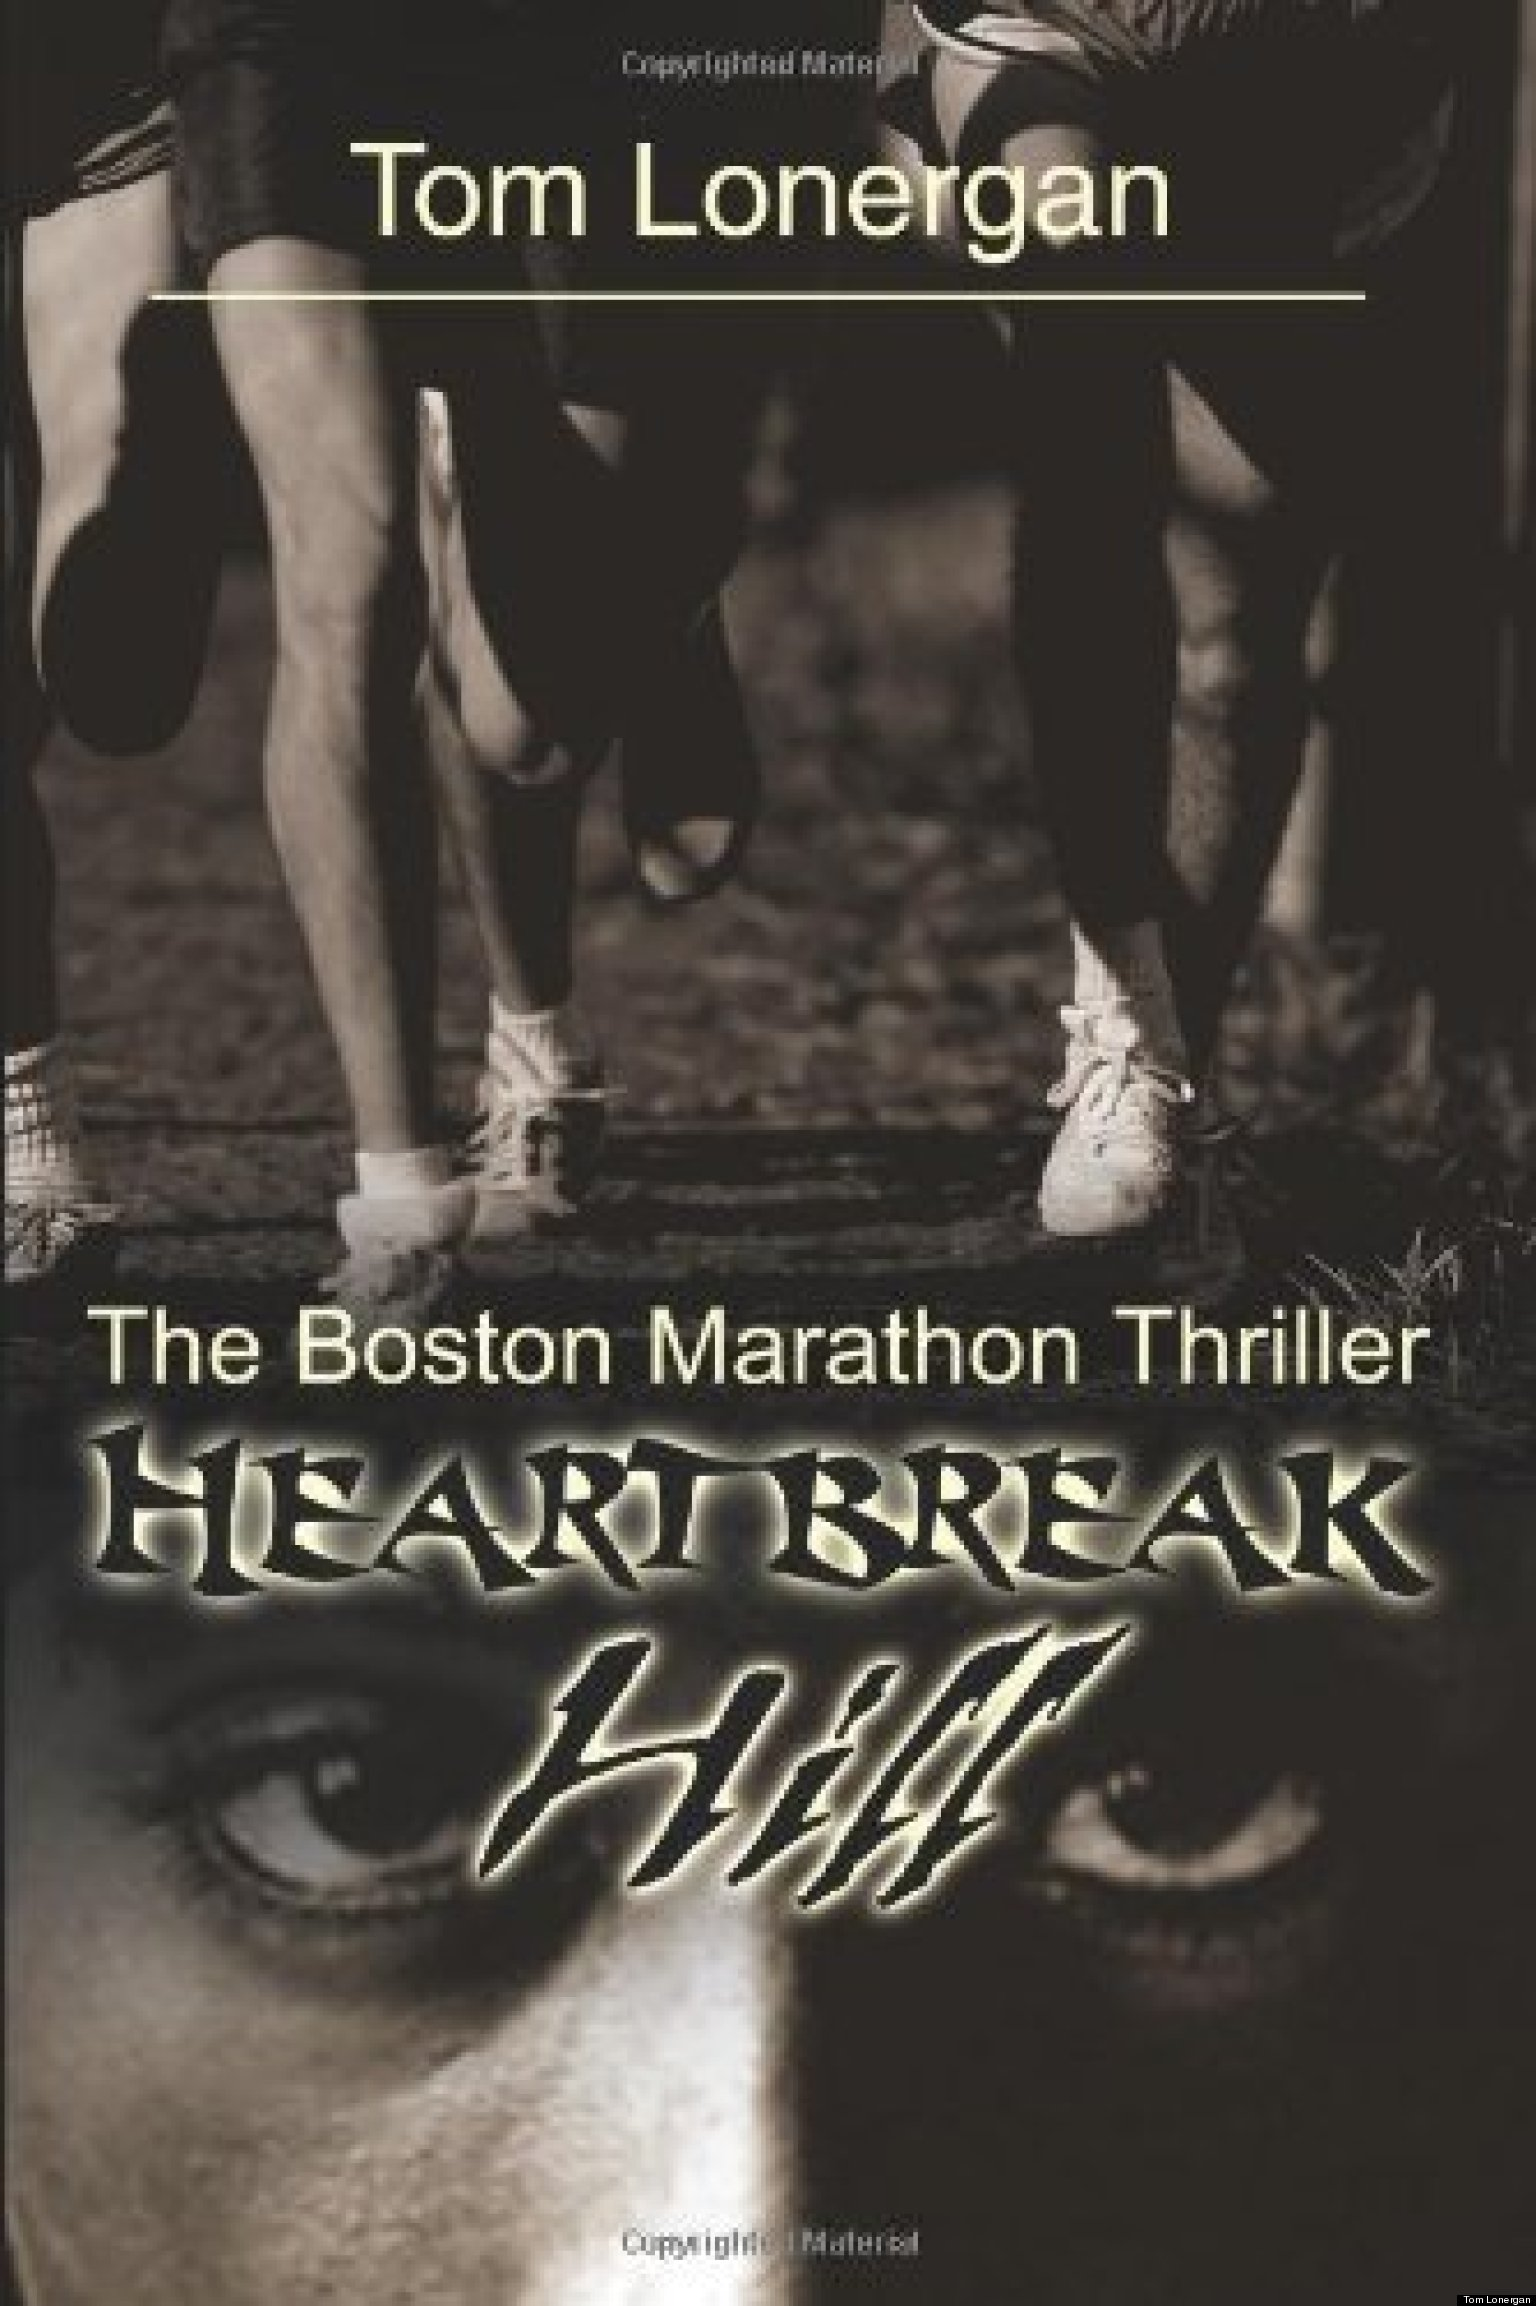 Author Says Boston Attack 'May Have Been Inspired By My Fiction'